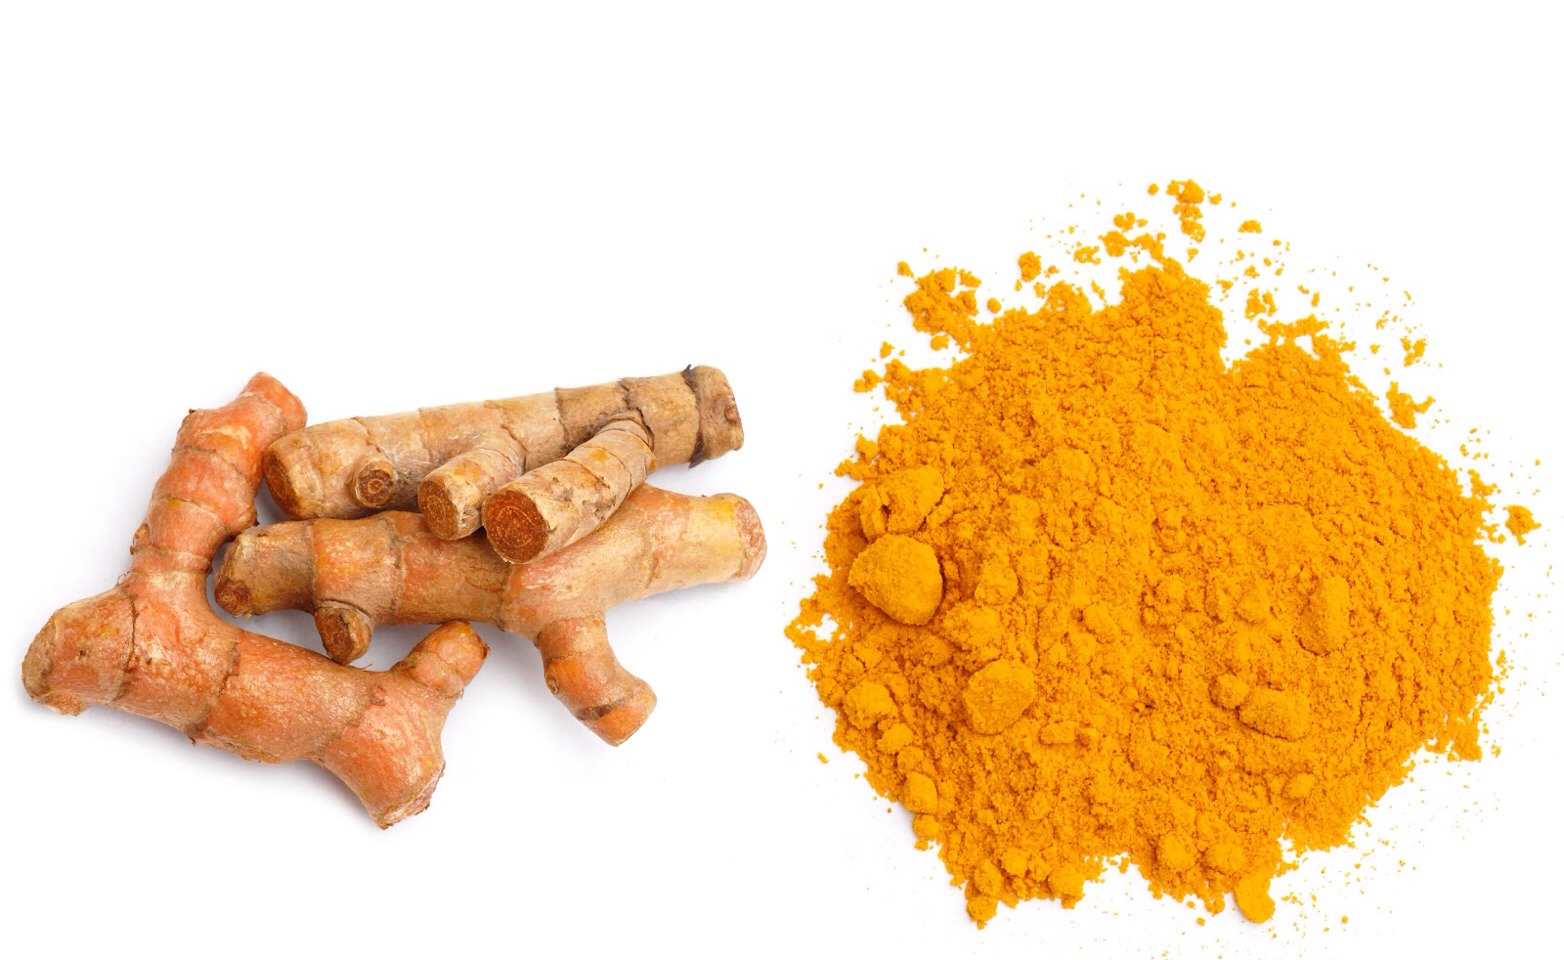 Tumeric! A spice used in curry and middle eastern cuisines... This spice is a miracle in a jar, an amazing source of antioxidants and has anti inflammatory properties.